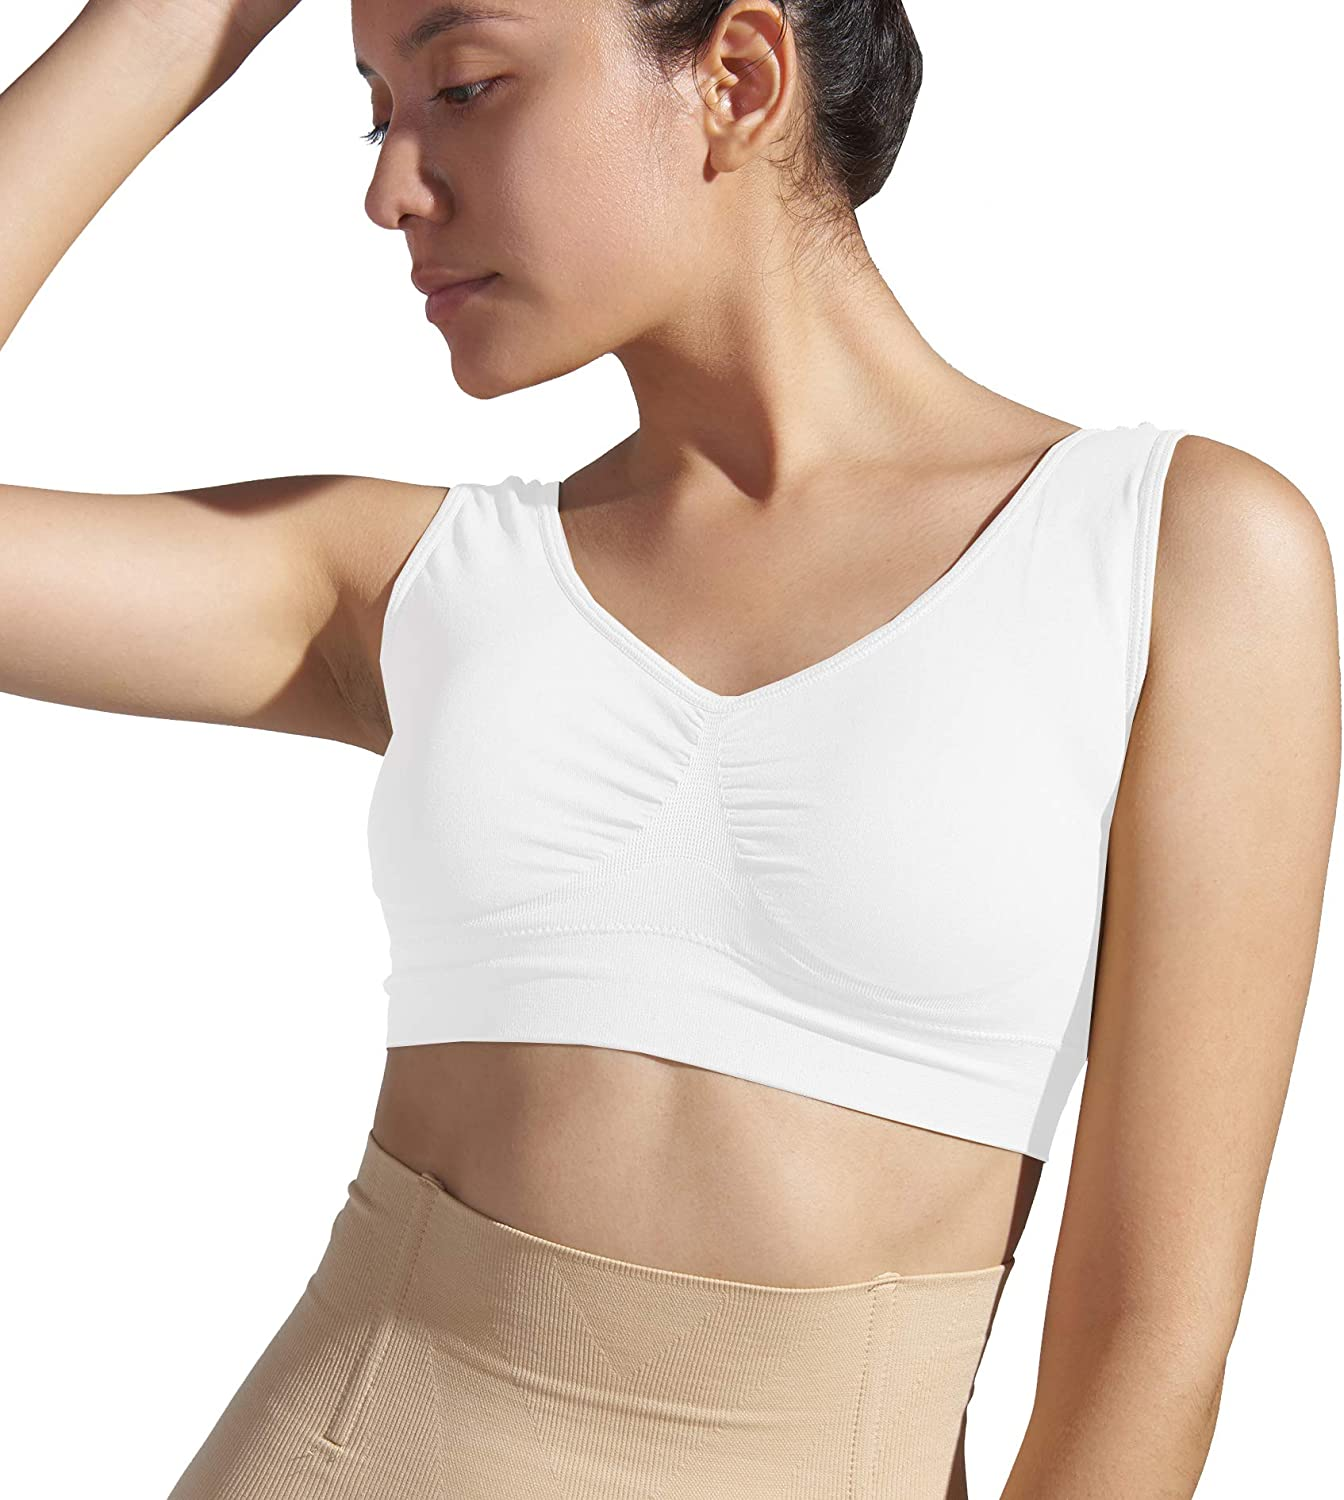 Yoga Bras Sport Bras HAPPY FEATHER Women Seamless Comfortable Wireless Sleep Bra with Removable Pads